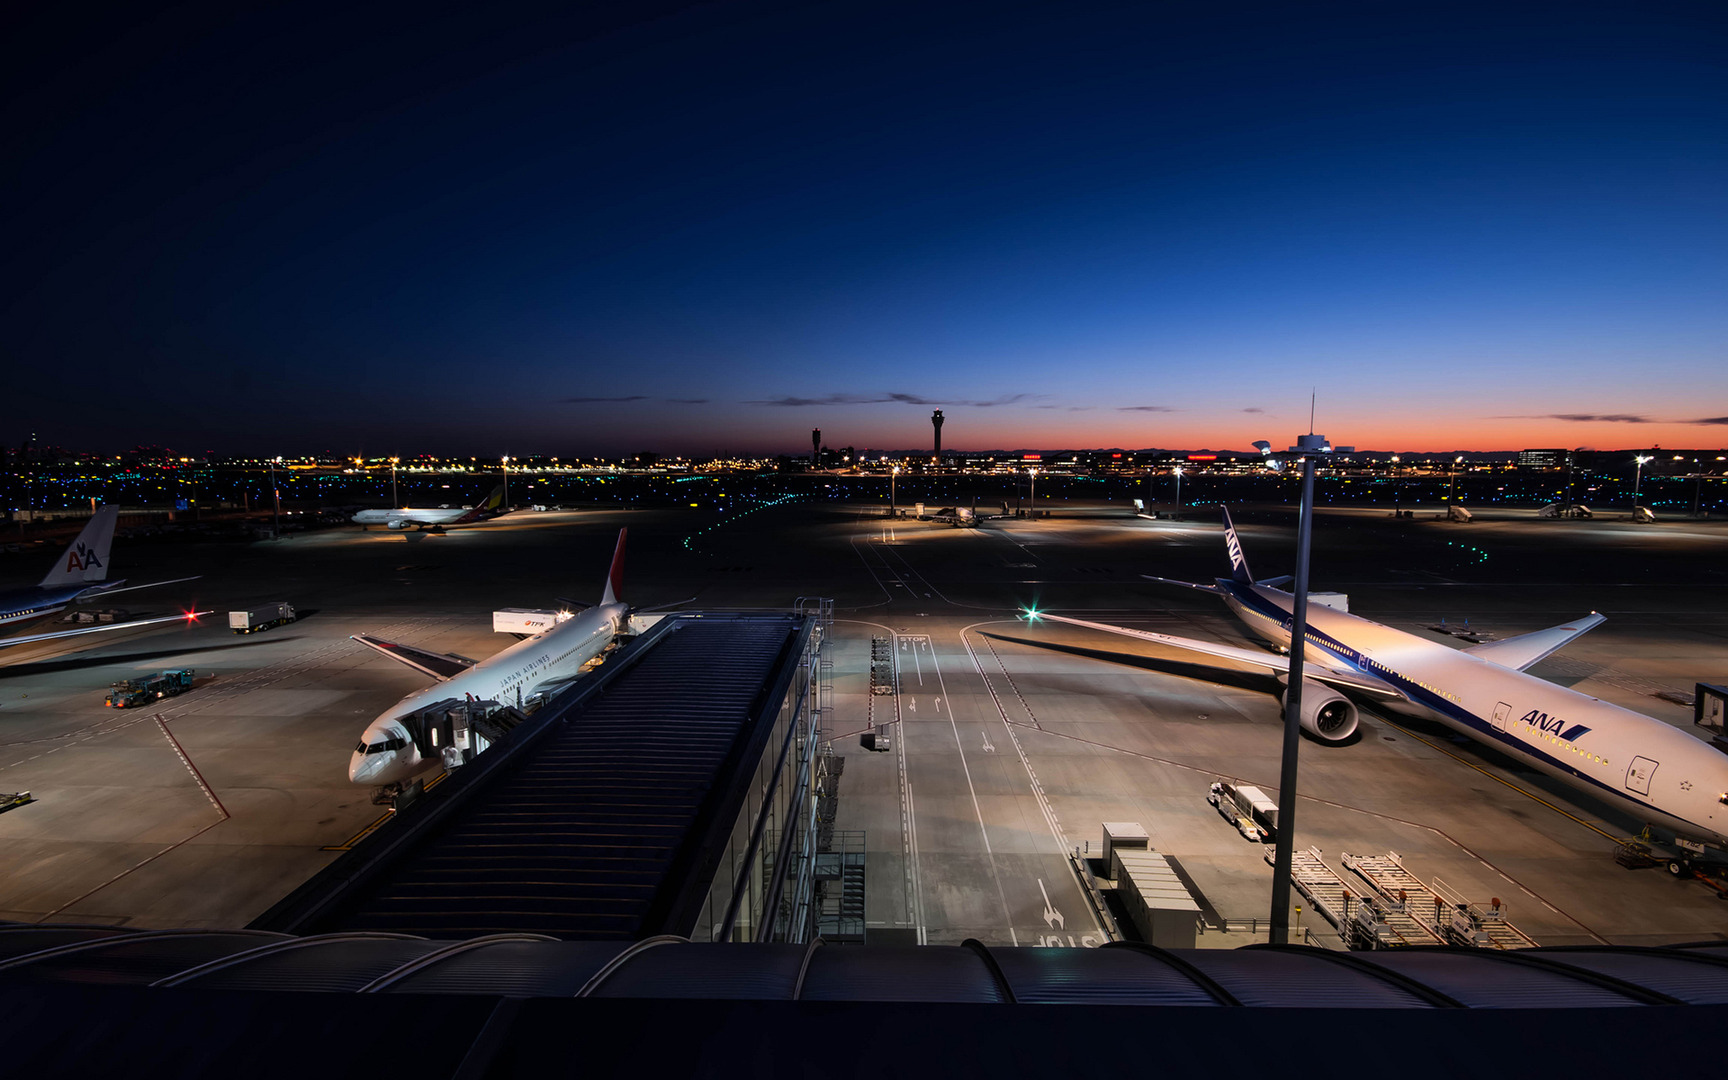 Night Airport Wallpapers High Quality